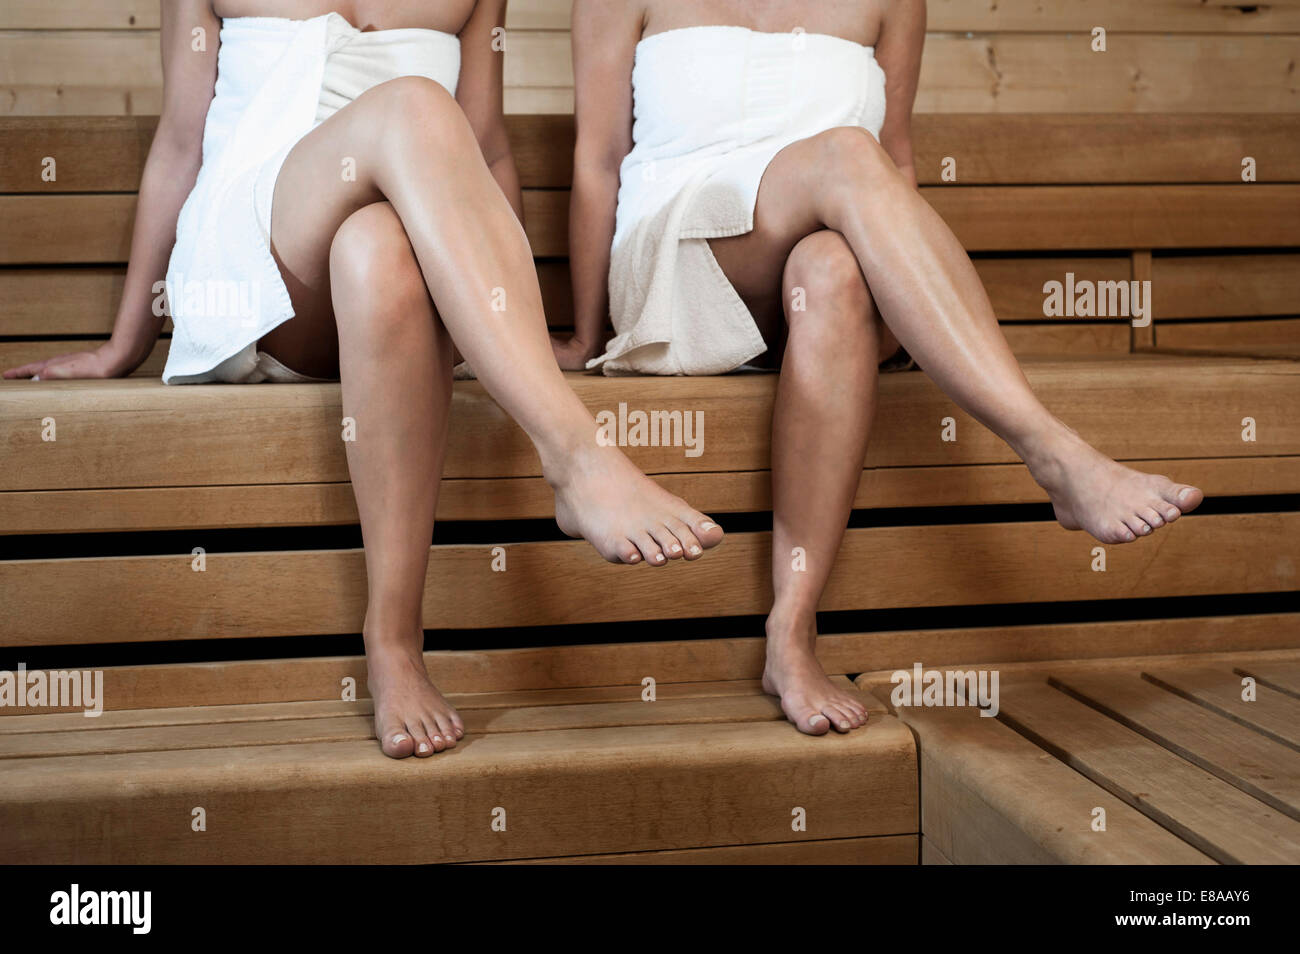 Two women in a sauna - Stock Image